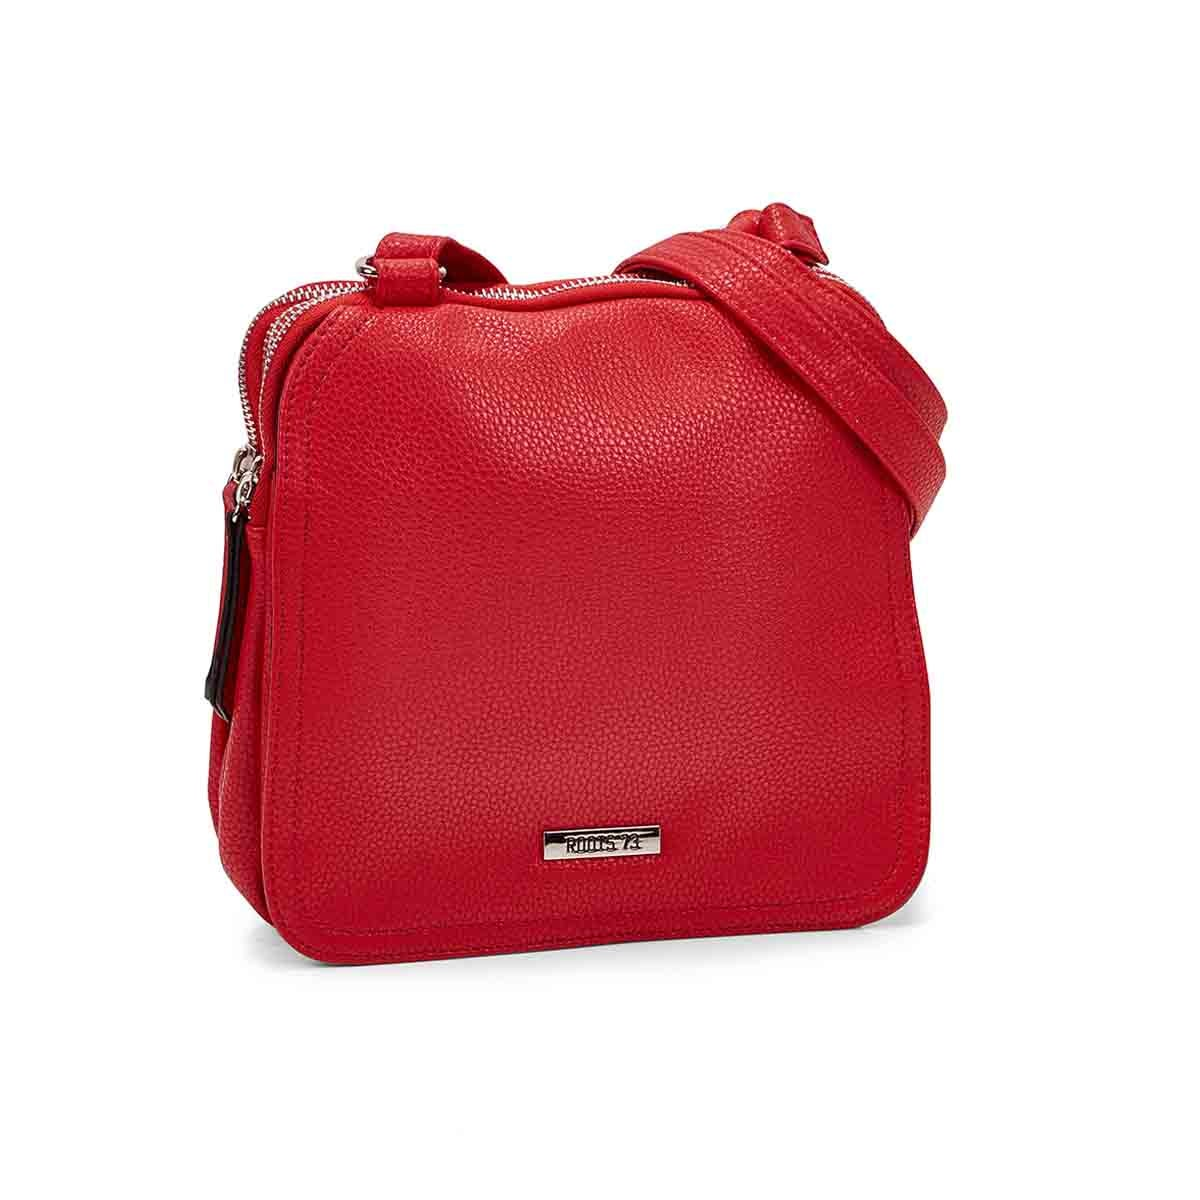 LdsRoots73 red 3 compartment crossbody